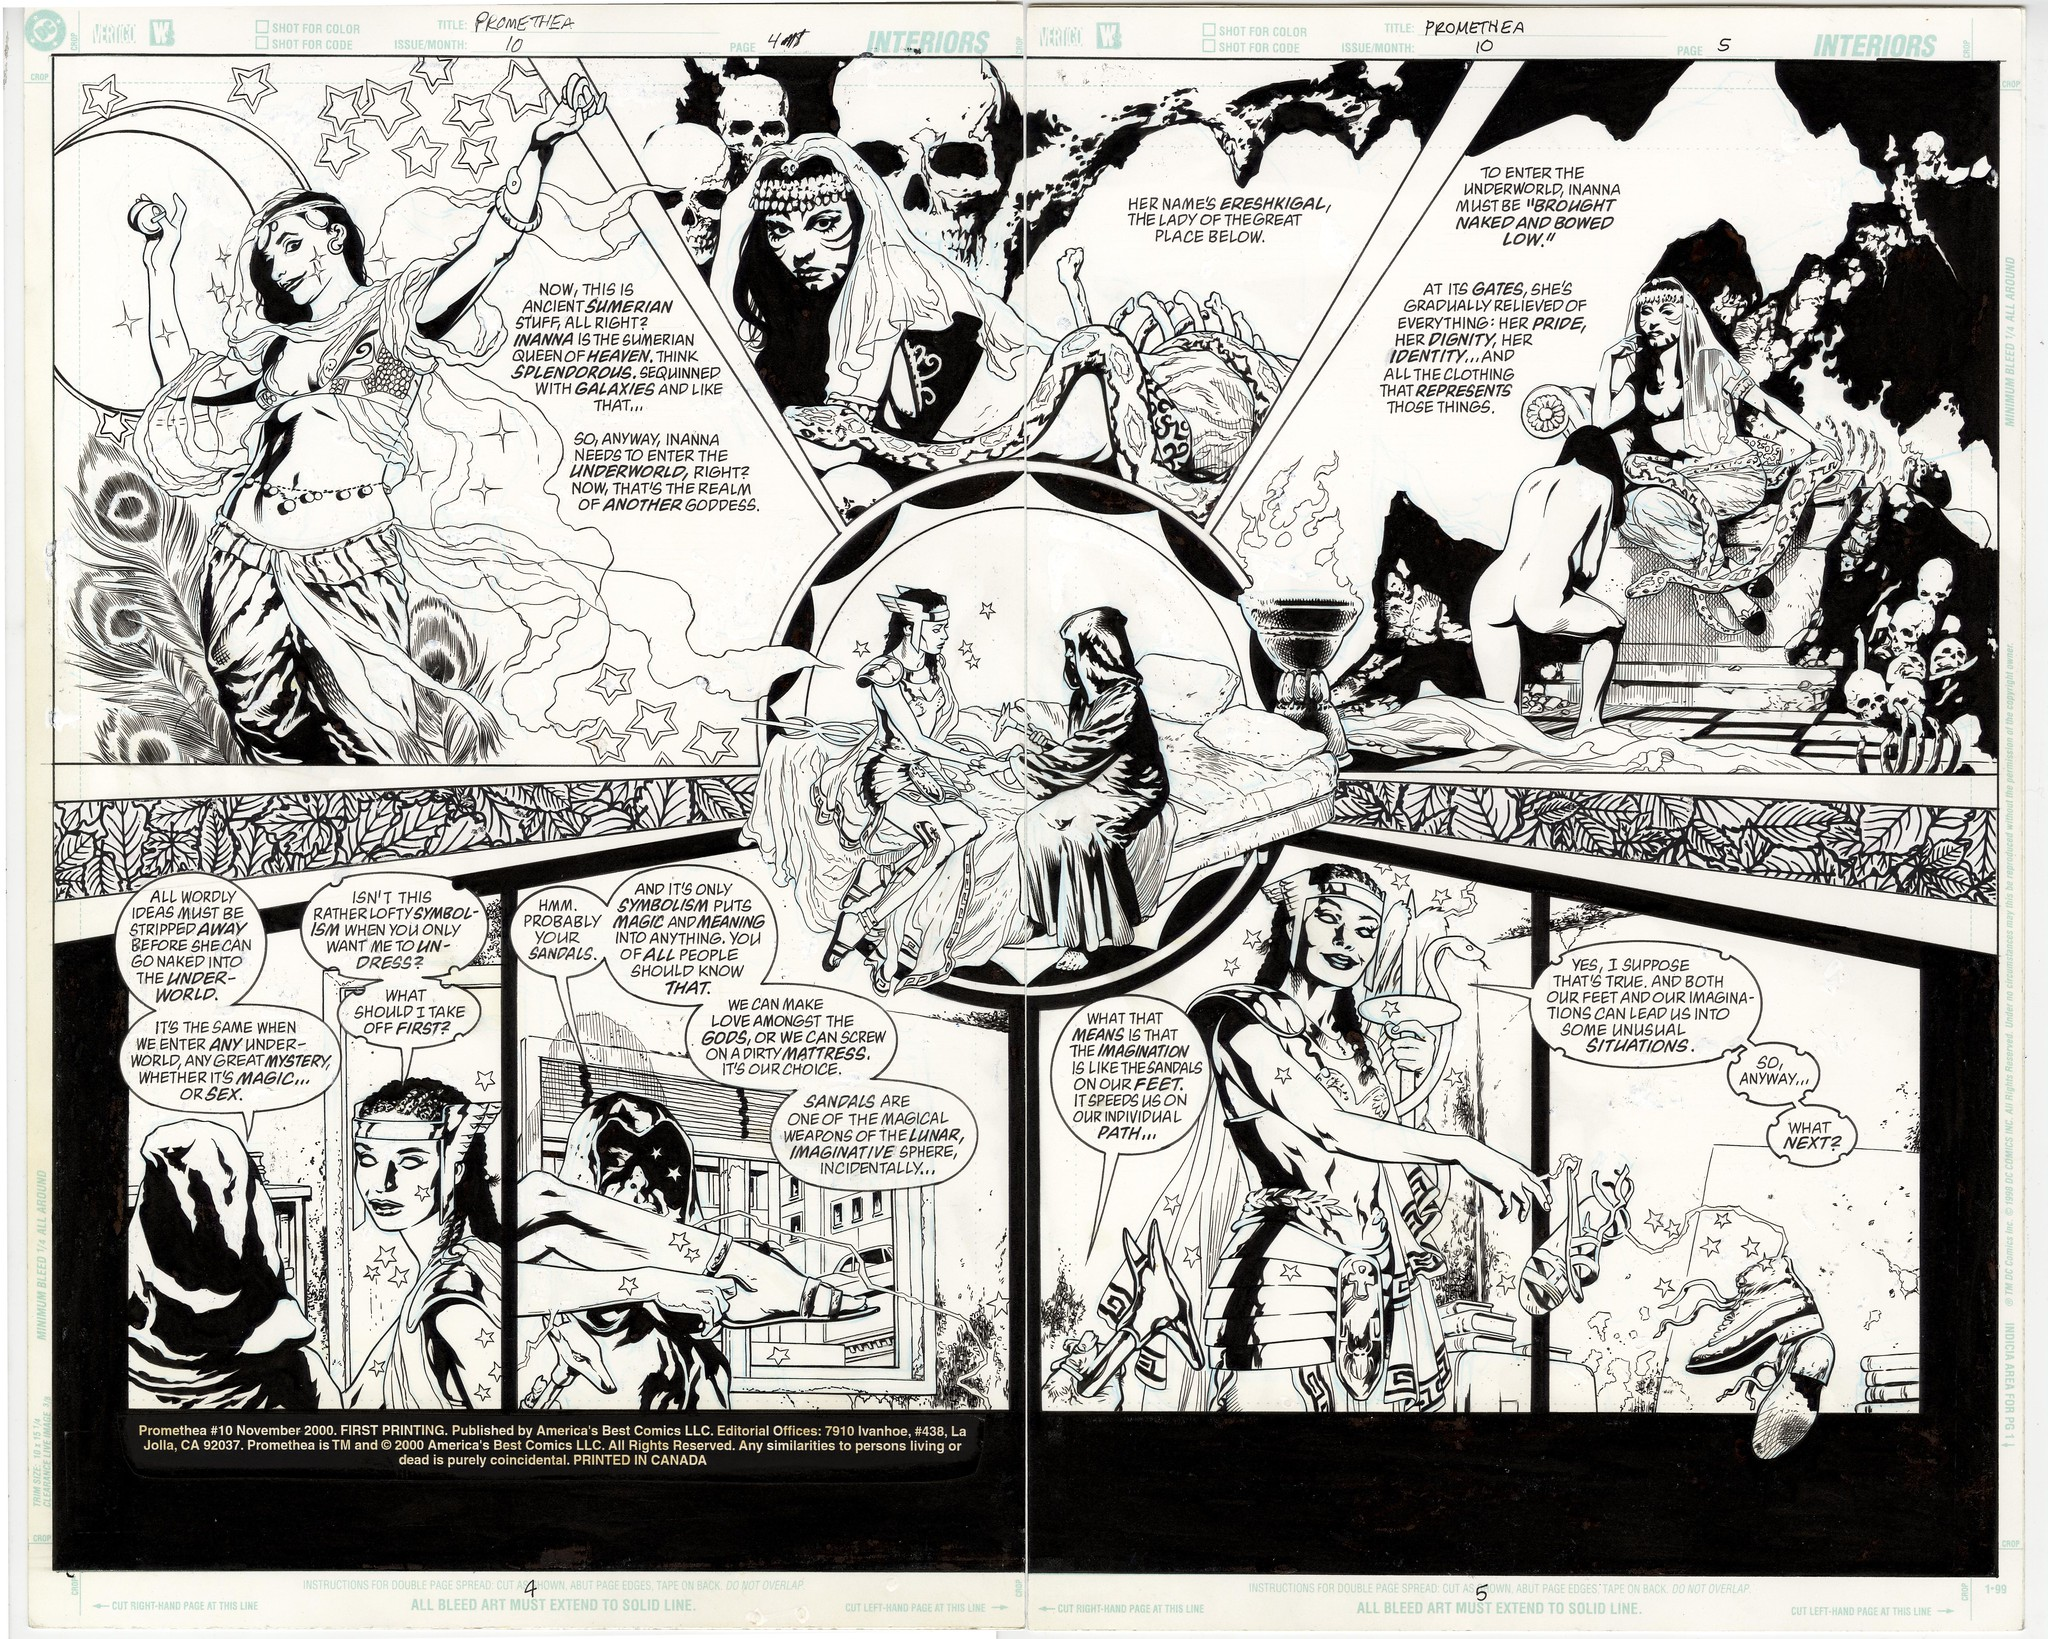 jh williams iii news gallery and original comic art for sale